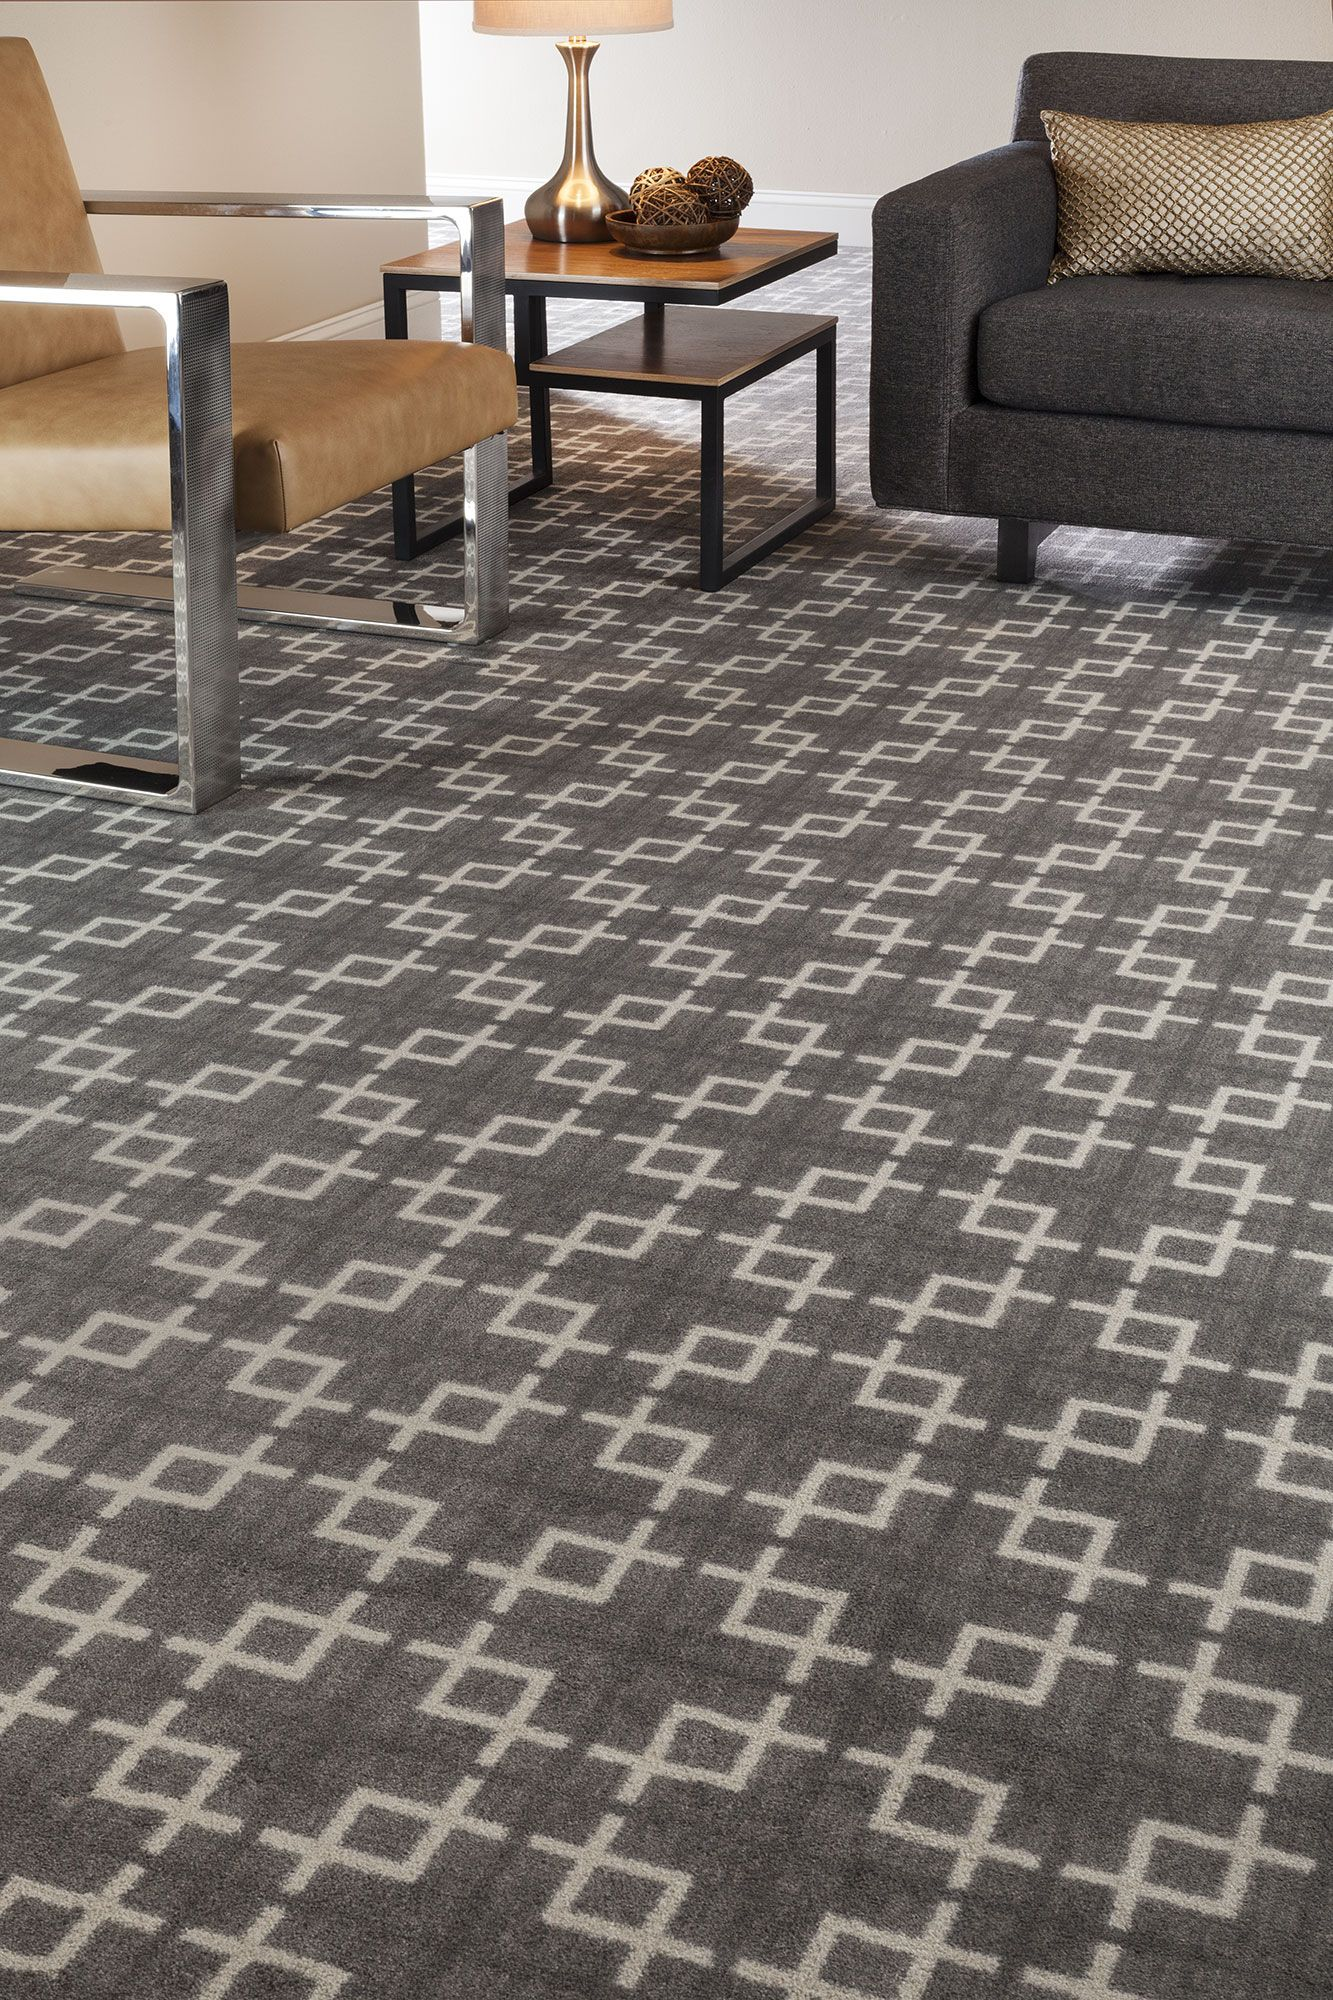 Geometric Patterned Carpet Gray Amp Cream Home Office